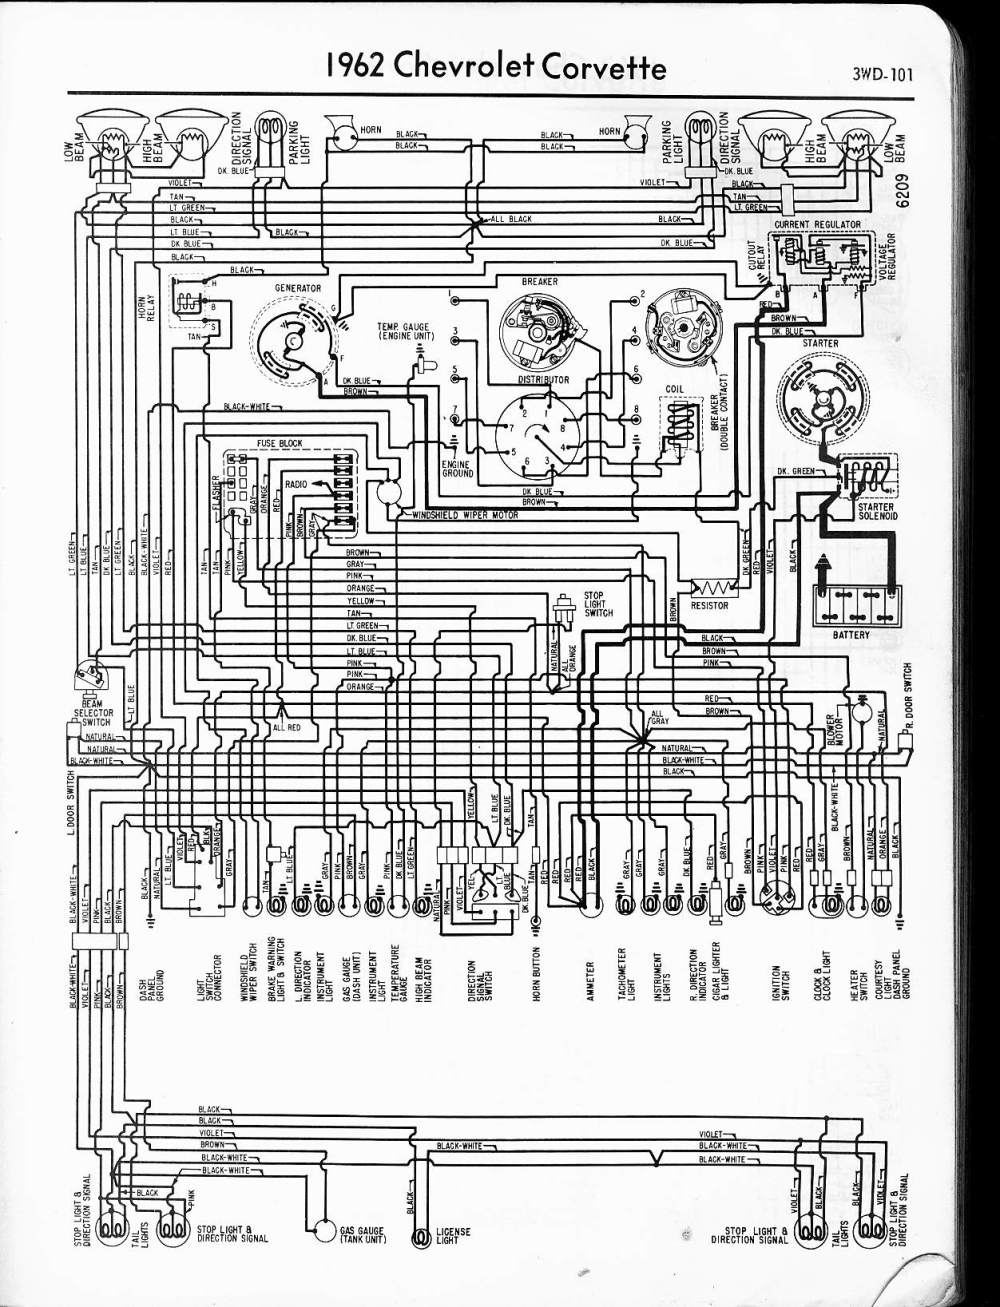 medium resolution of 1962 chevy wiring diagram wiring diagram details57 65 chevy wiring diagrams 1962 chevy nova wiring diagram